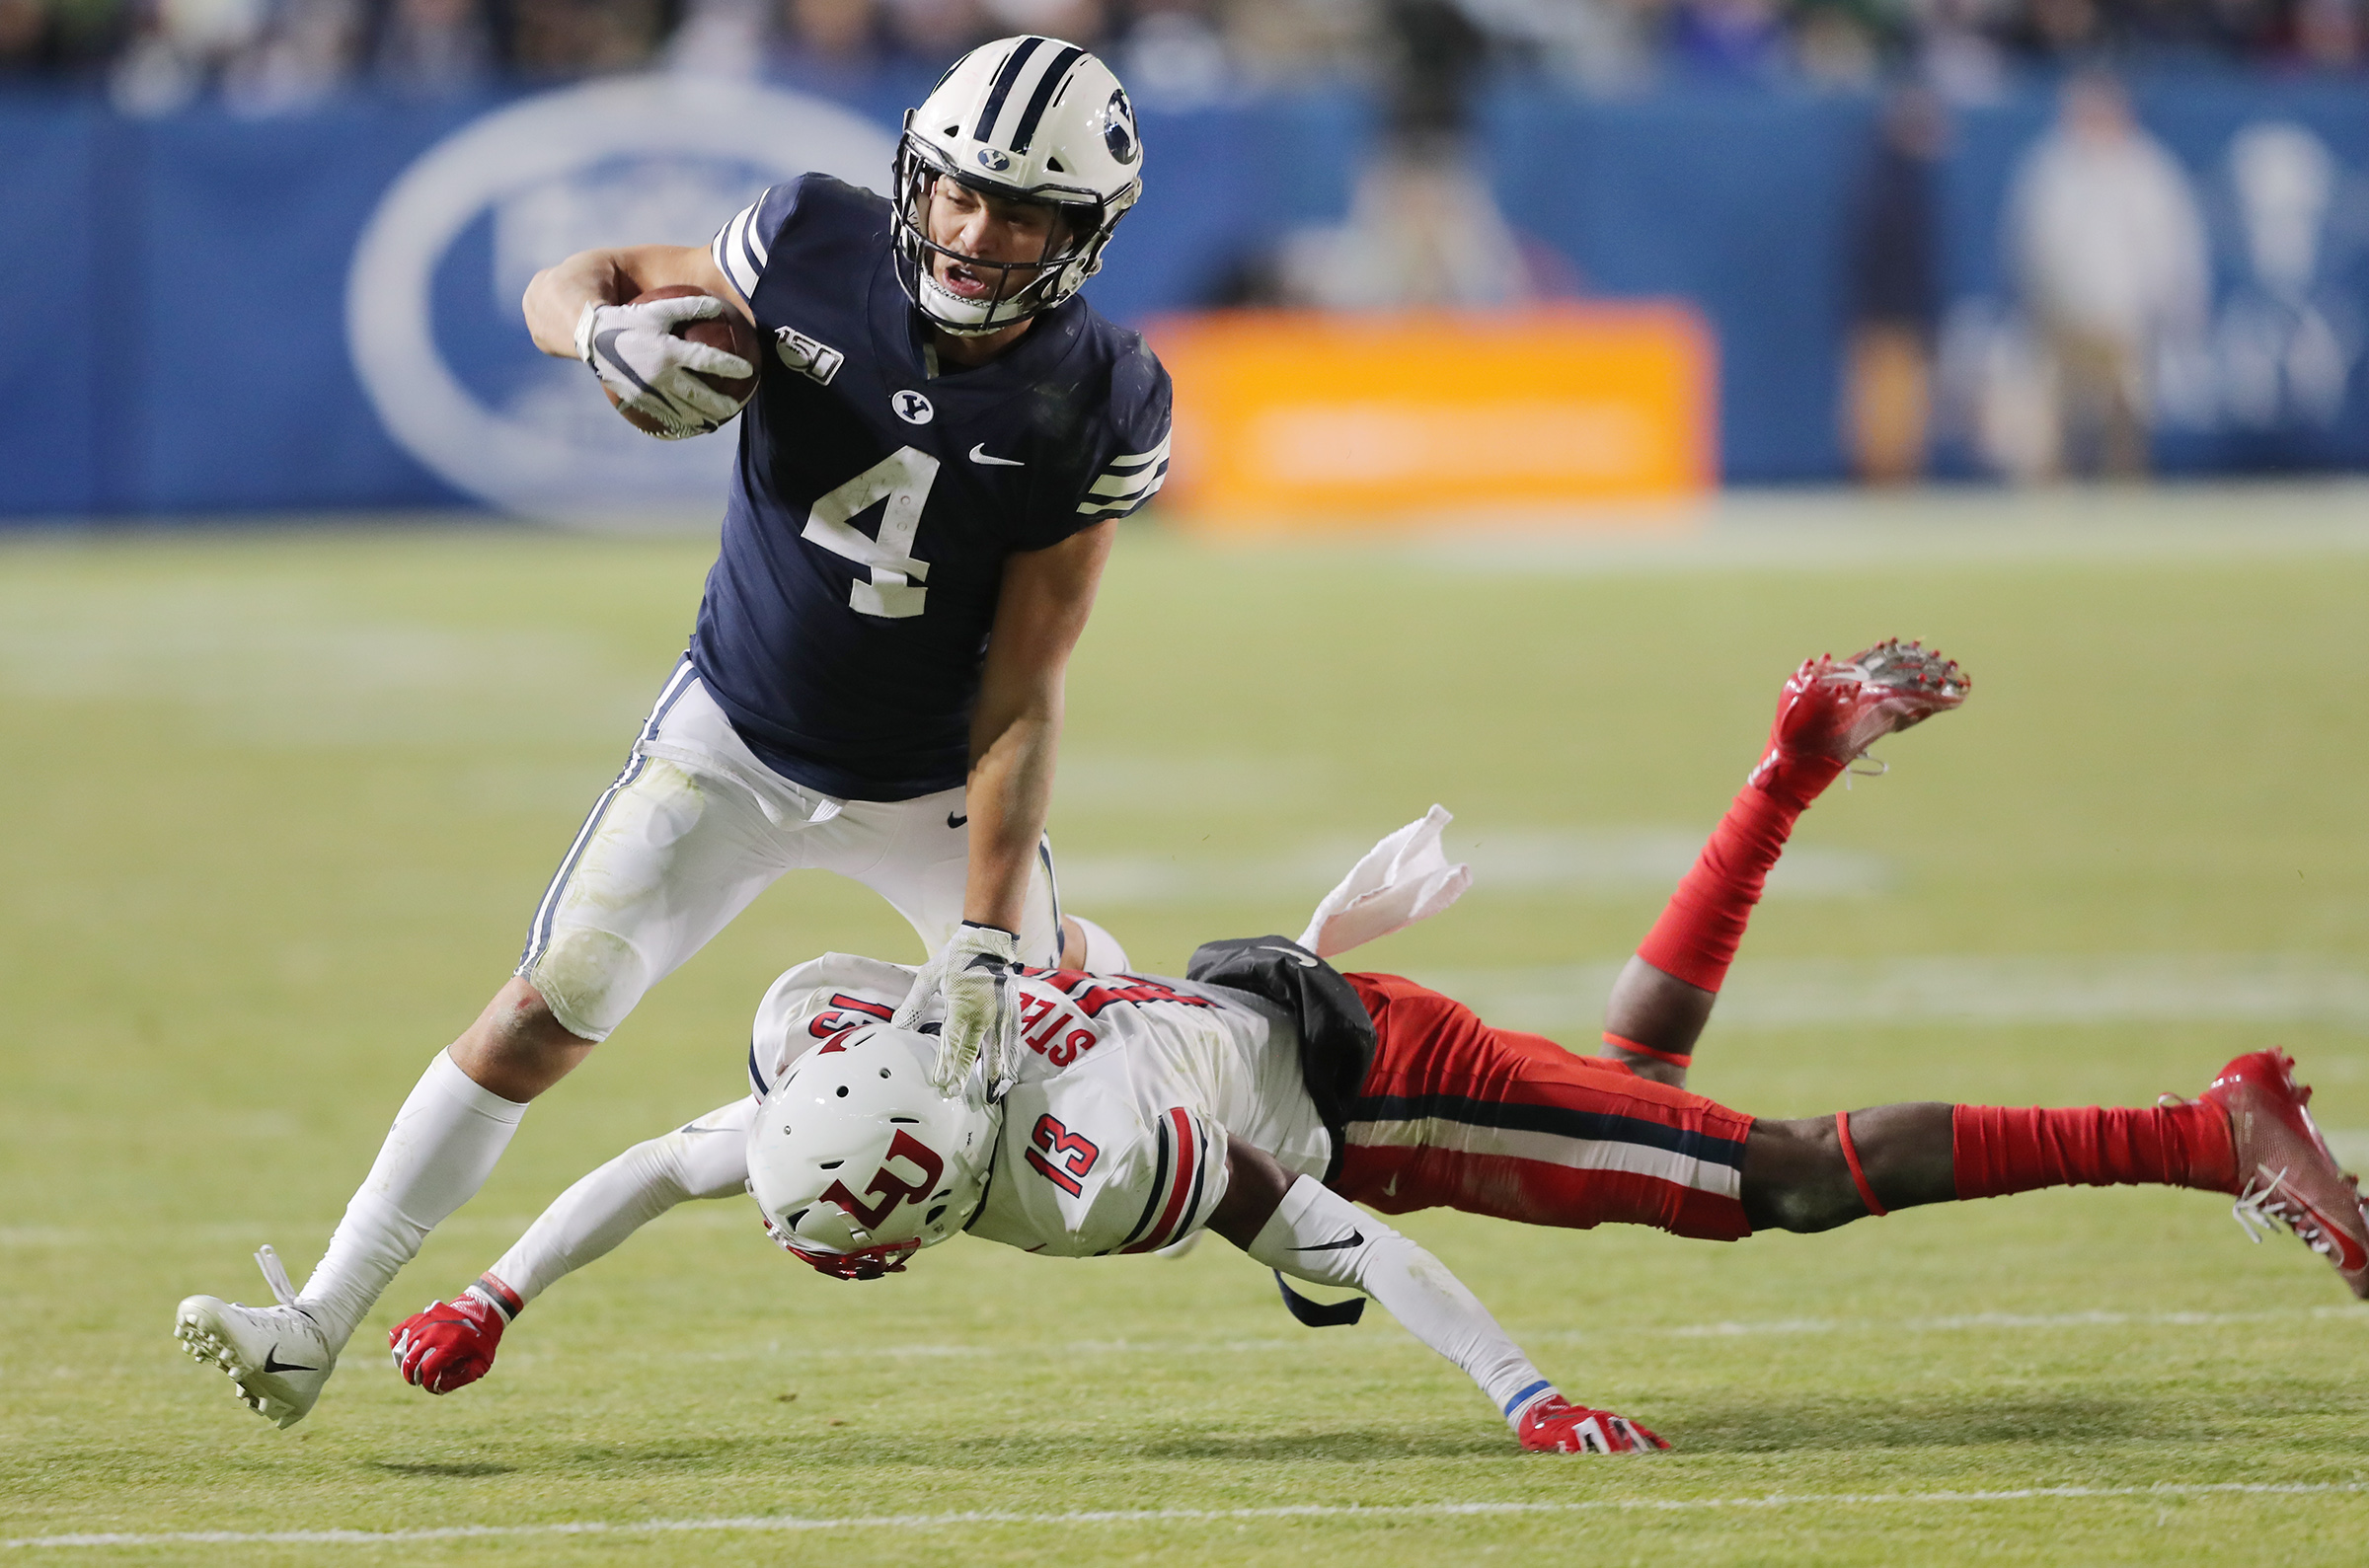 Brigham Young Cougars running back Lopini Katoa (4) is hit by Liberty Flames safety Isaac Steele (13) as BYU and Liberty play an NCAA football game in Provo, Utah on Saturday, Nov. 9, 2019. BYU won 31-24.